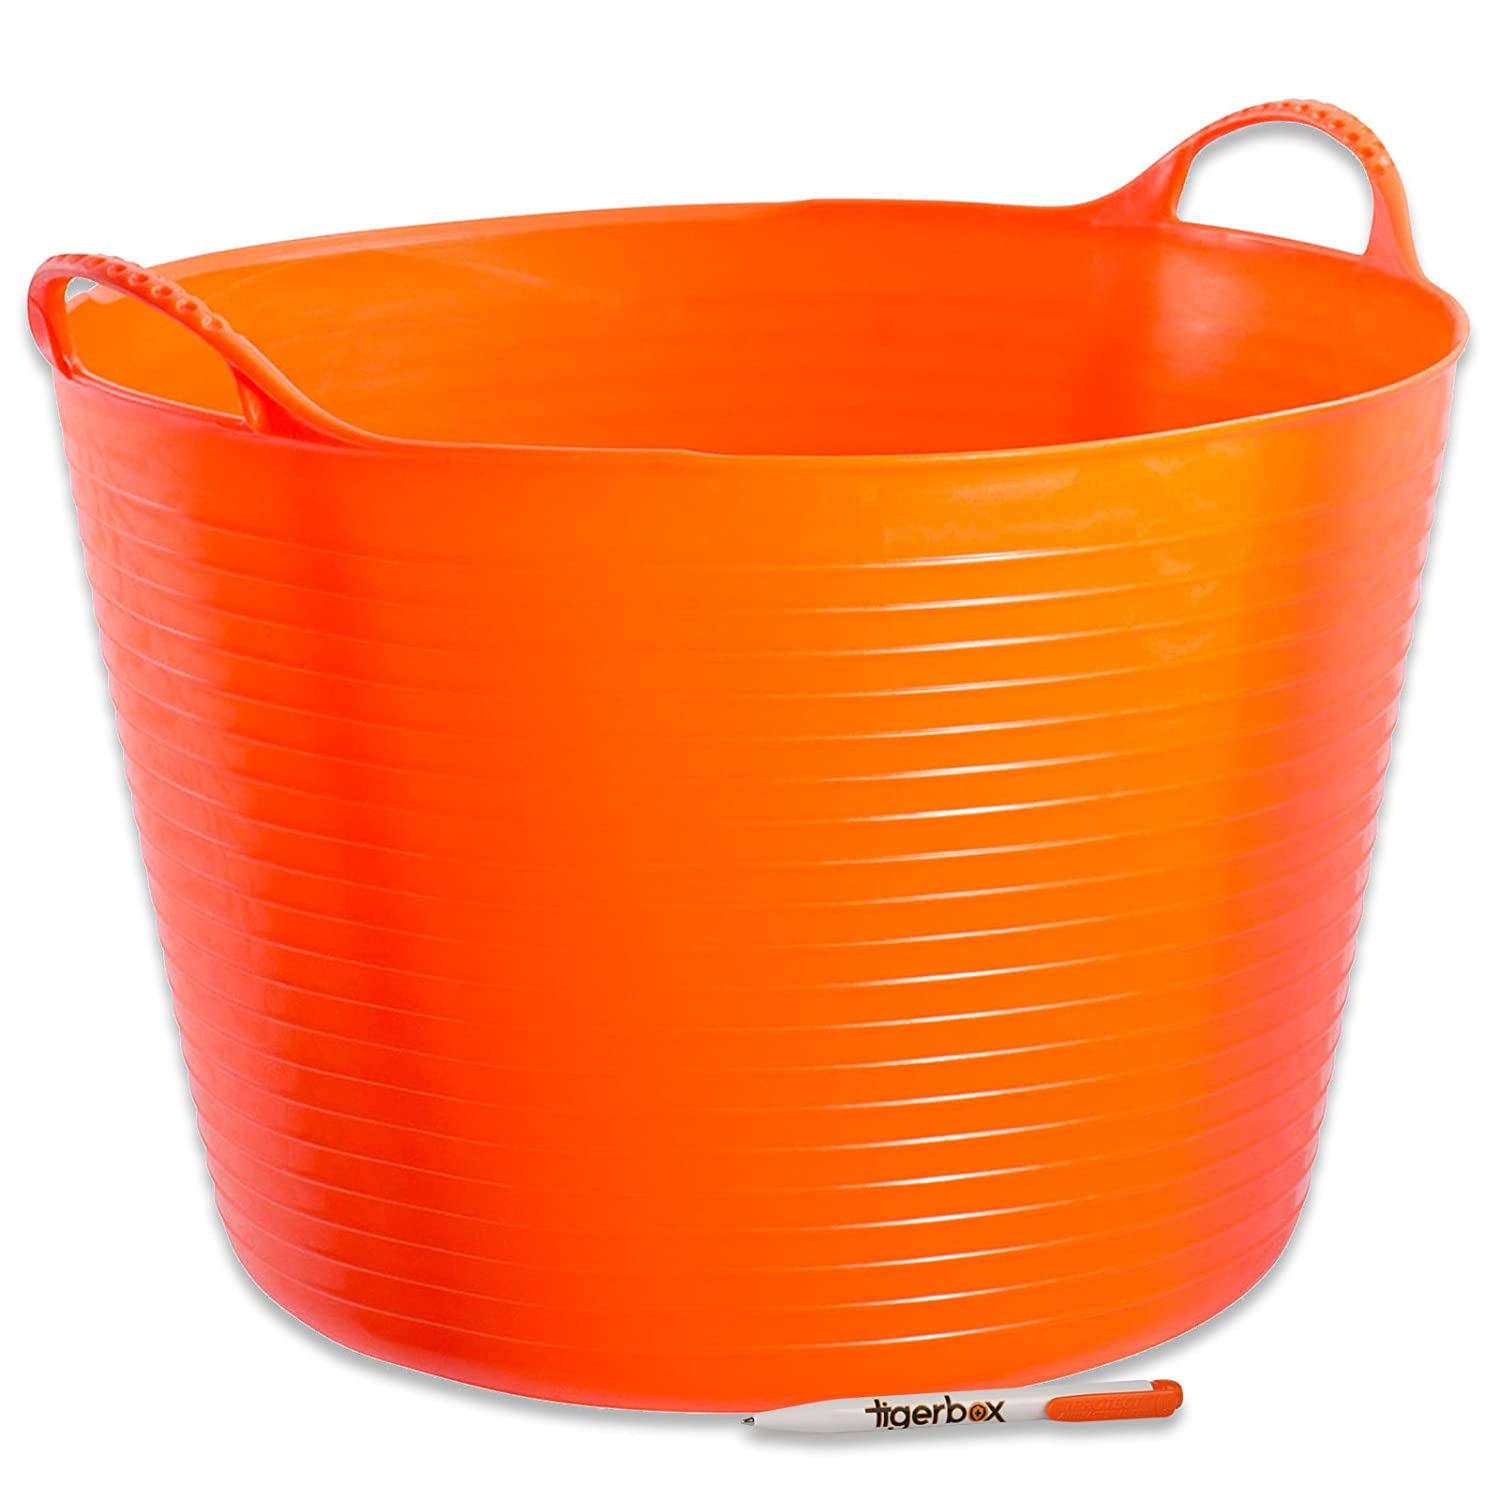 /& Tigerbox/® Antibacterial Pen Extra Large Green Flexible Strong Red Gorilla/® Storage Bucket Baskets ALL COLOURS AND SIZES